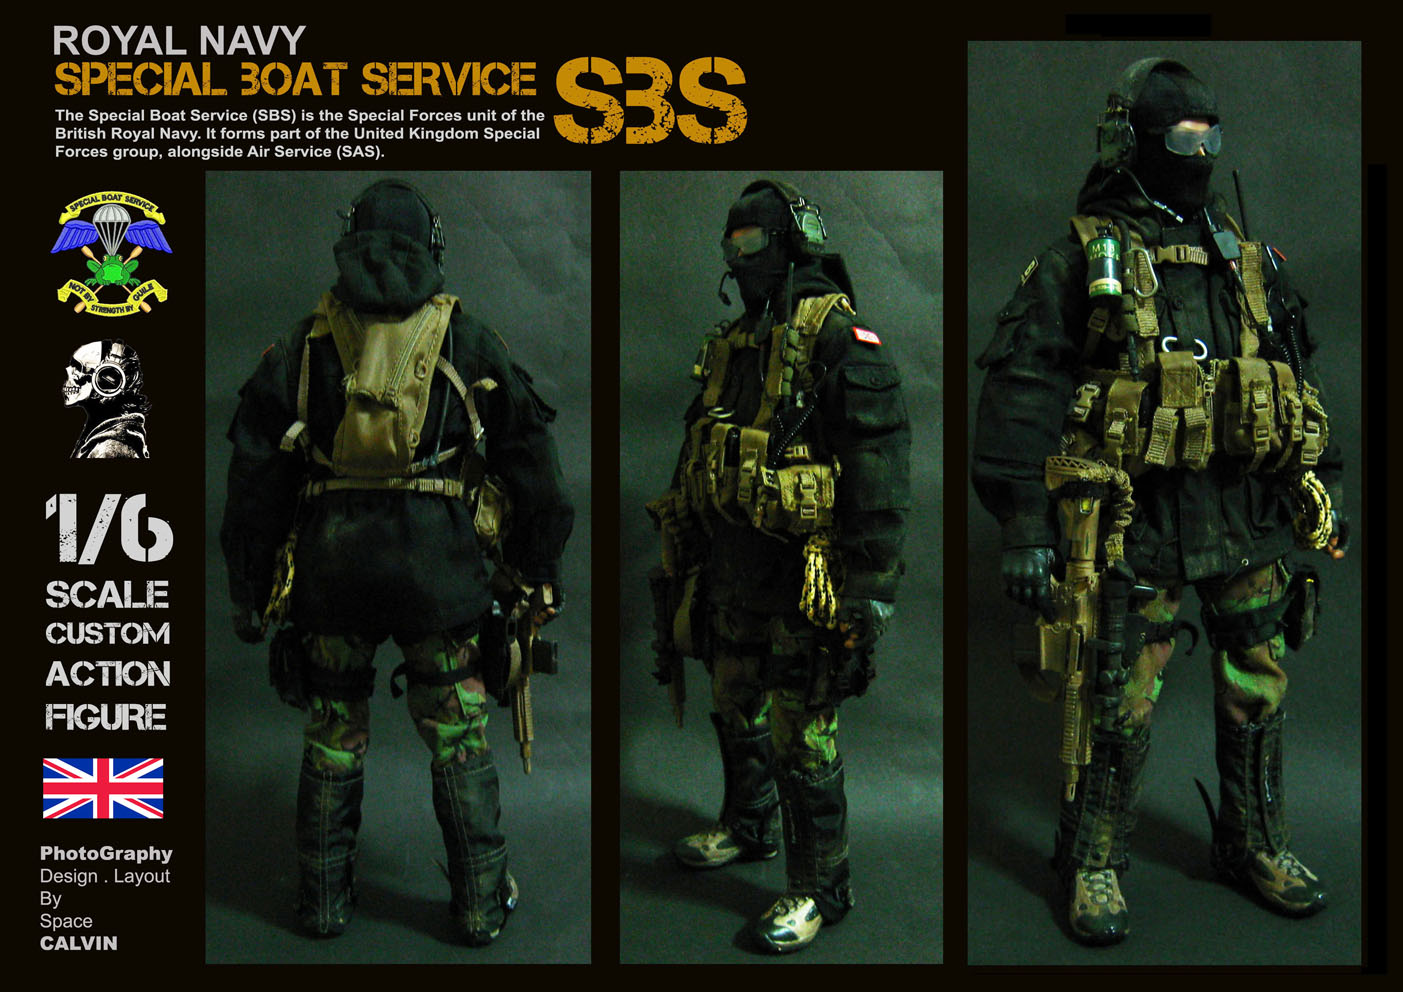 Special boat service rare images sbs - the special boat service are the naval special forces of the united